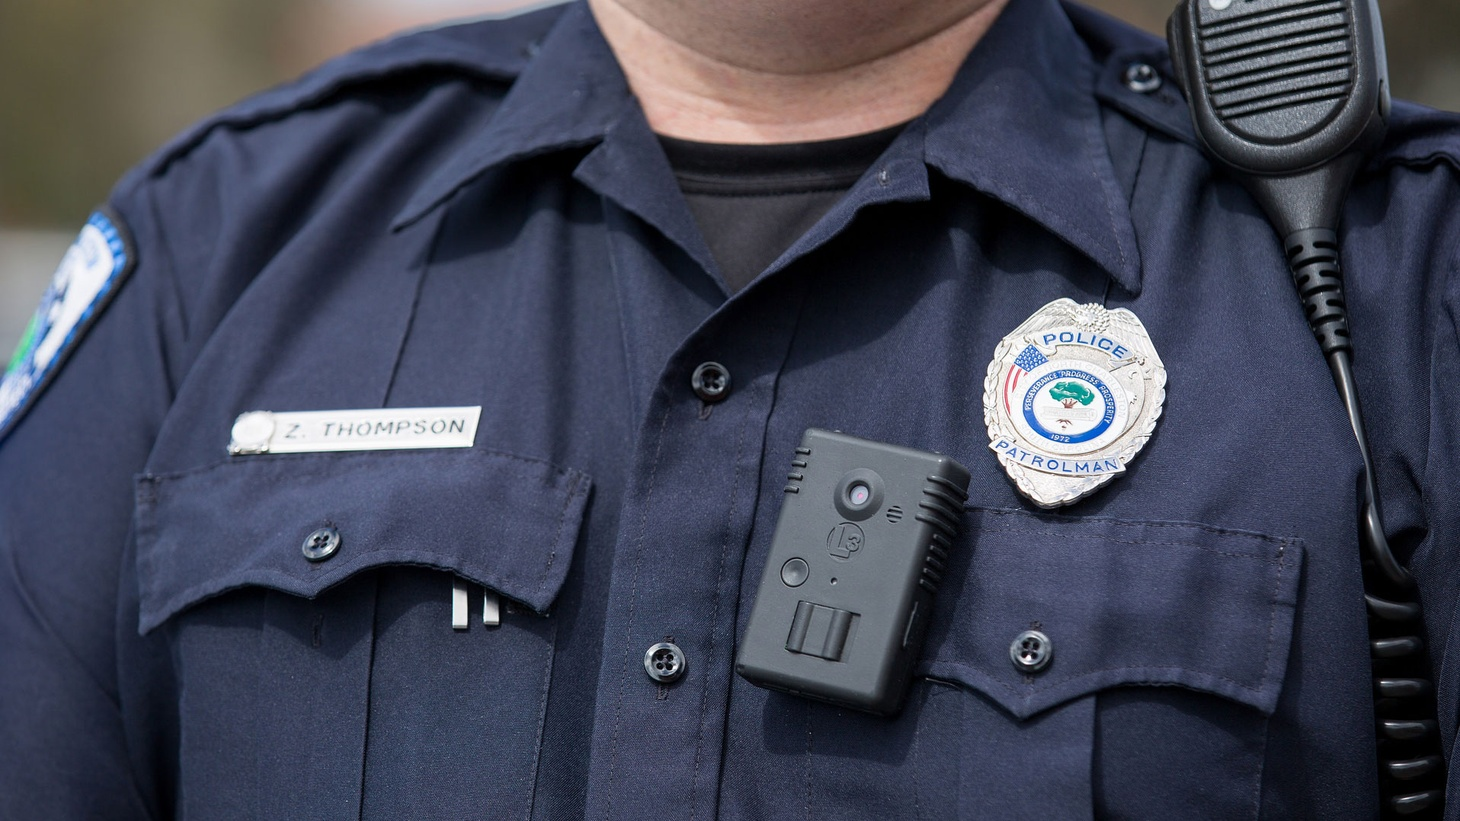 """The federal government is subsidizing dash-cams and body-cams for local police in response to high-publicized incidents of police misconduct. On this special rebroadcast of To the Point, what does the footage really show? Should the public be able to see it all? We hear about the need for balance between privacy and so-called """"transparency."""""""